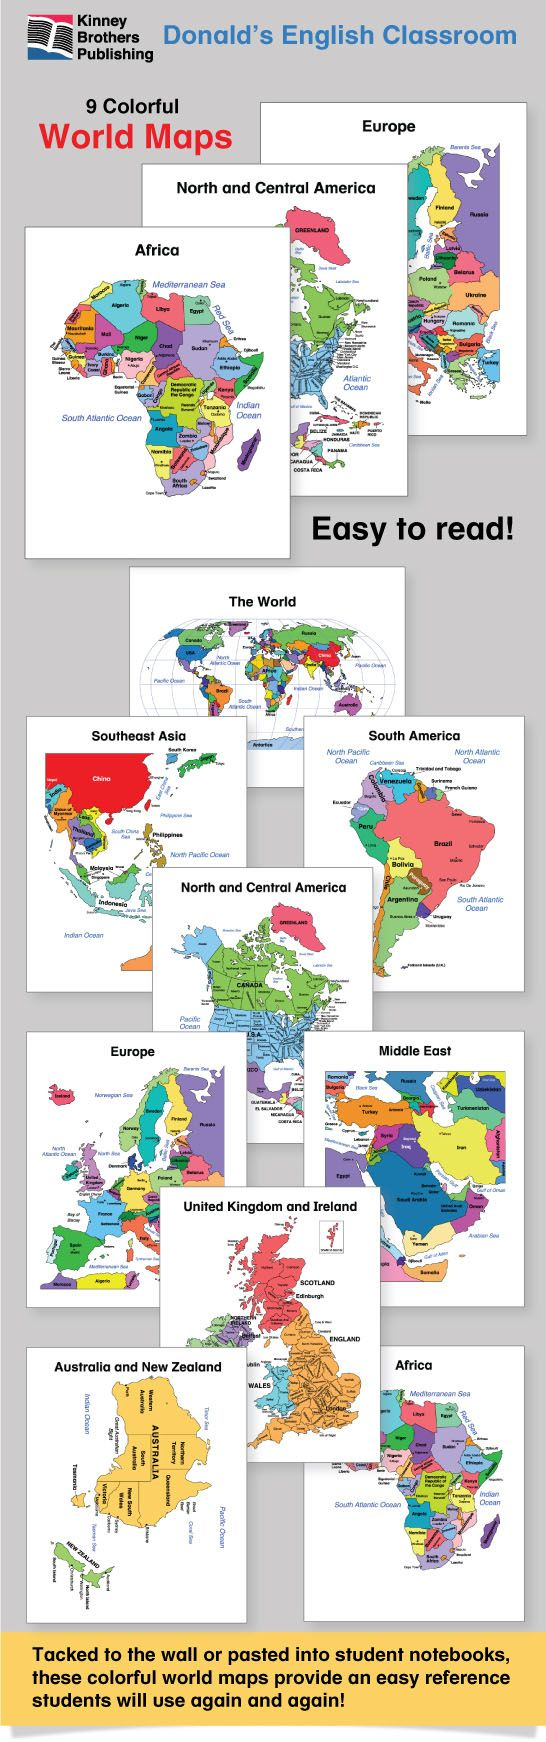 Esl world maps bestsellers students easy and walls easy to read inexpensive downloadable high resolution world maps great for hanging or adding to notebooks up to date on countries too gumiabroncs Image collections